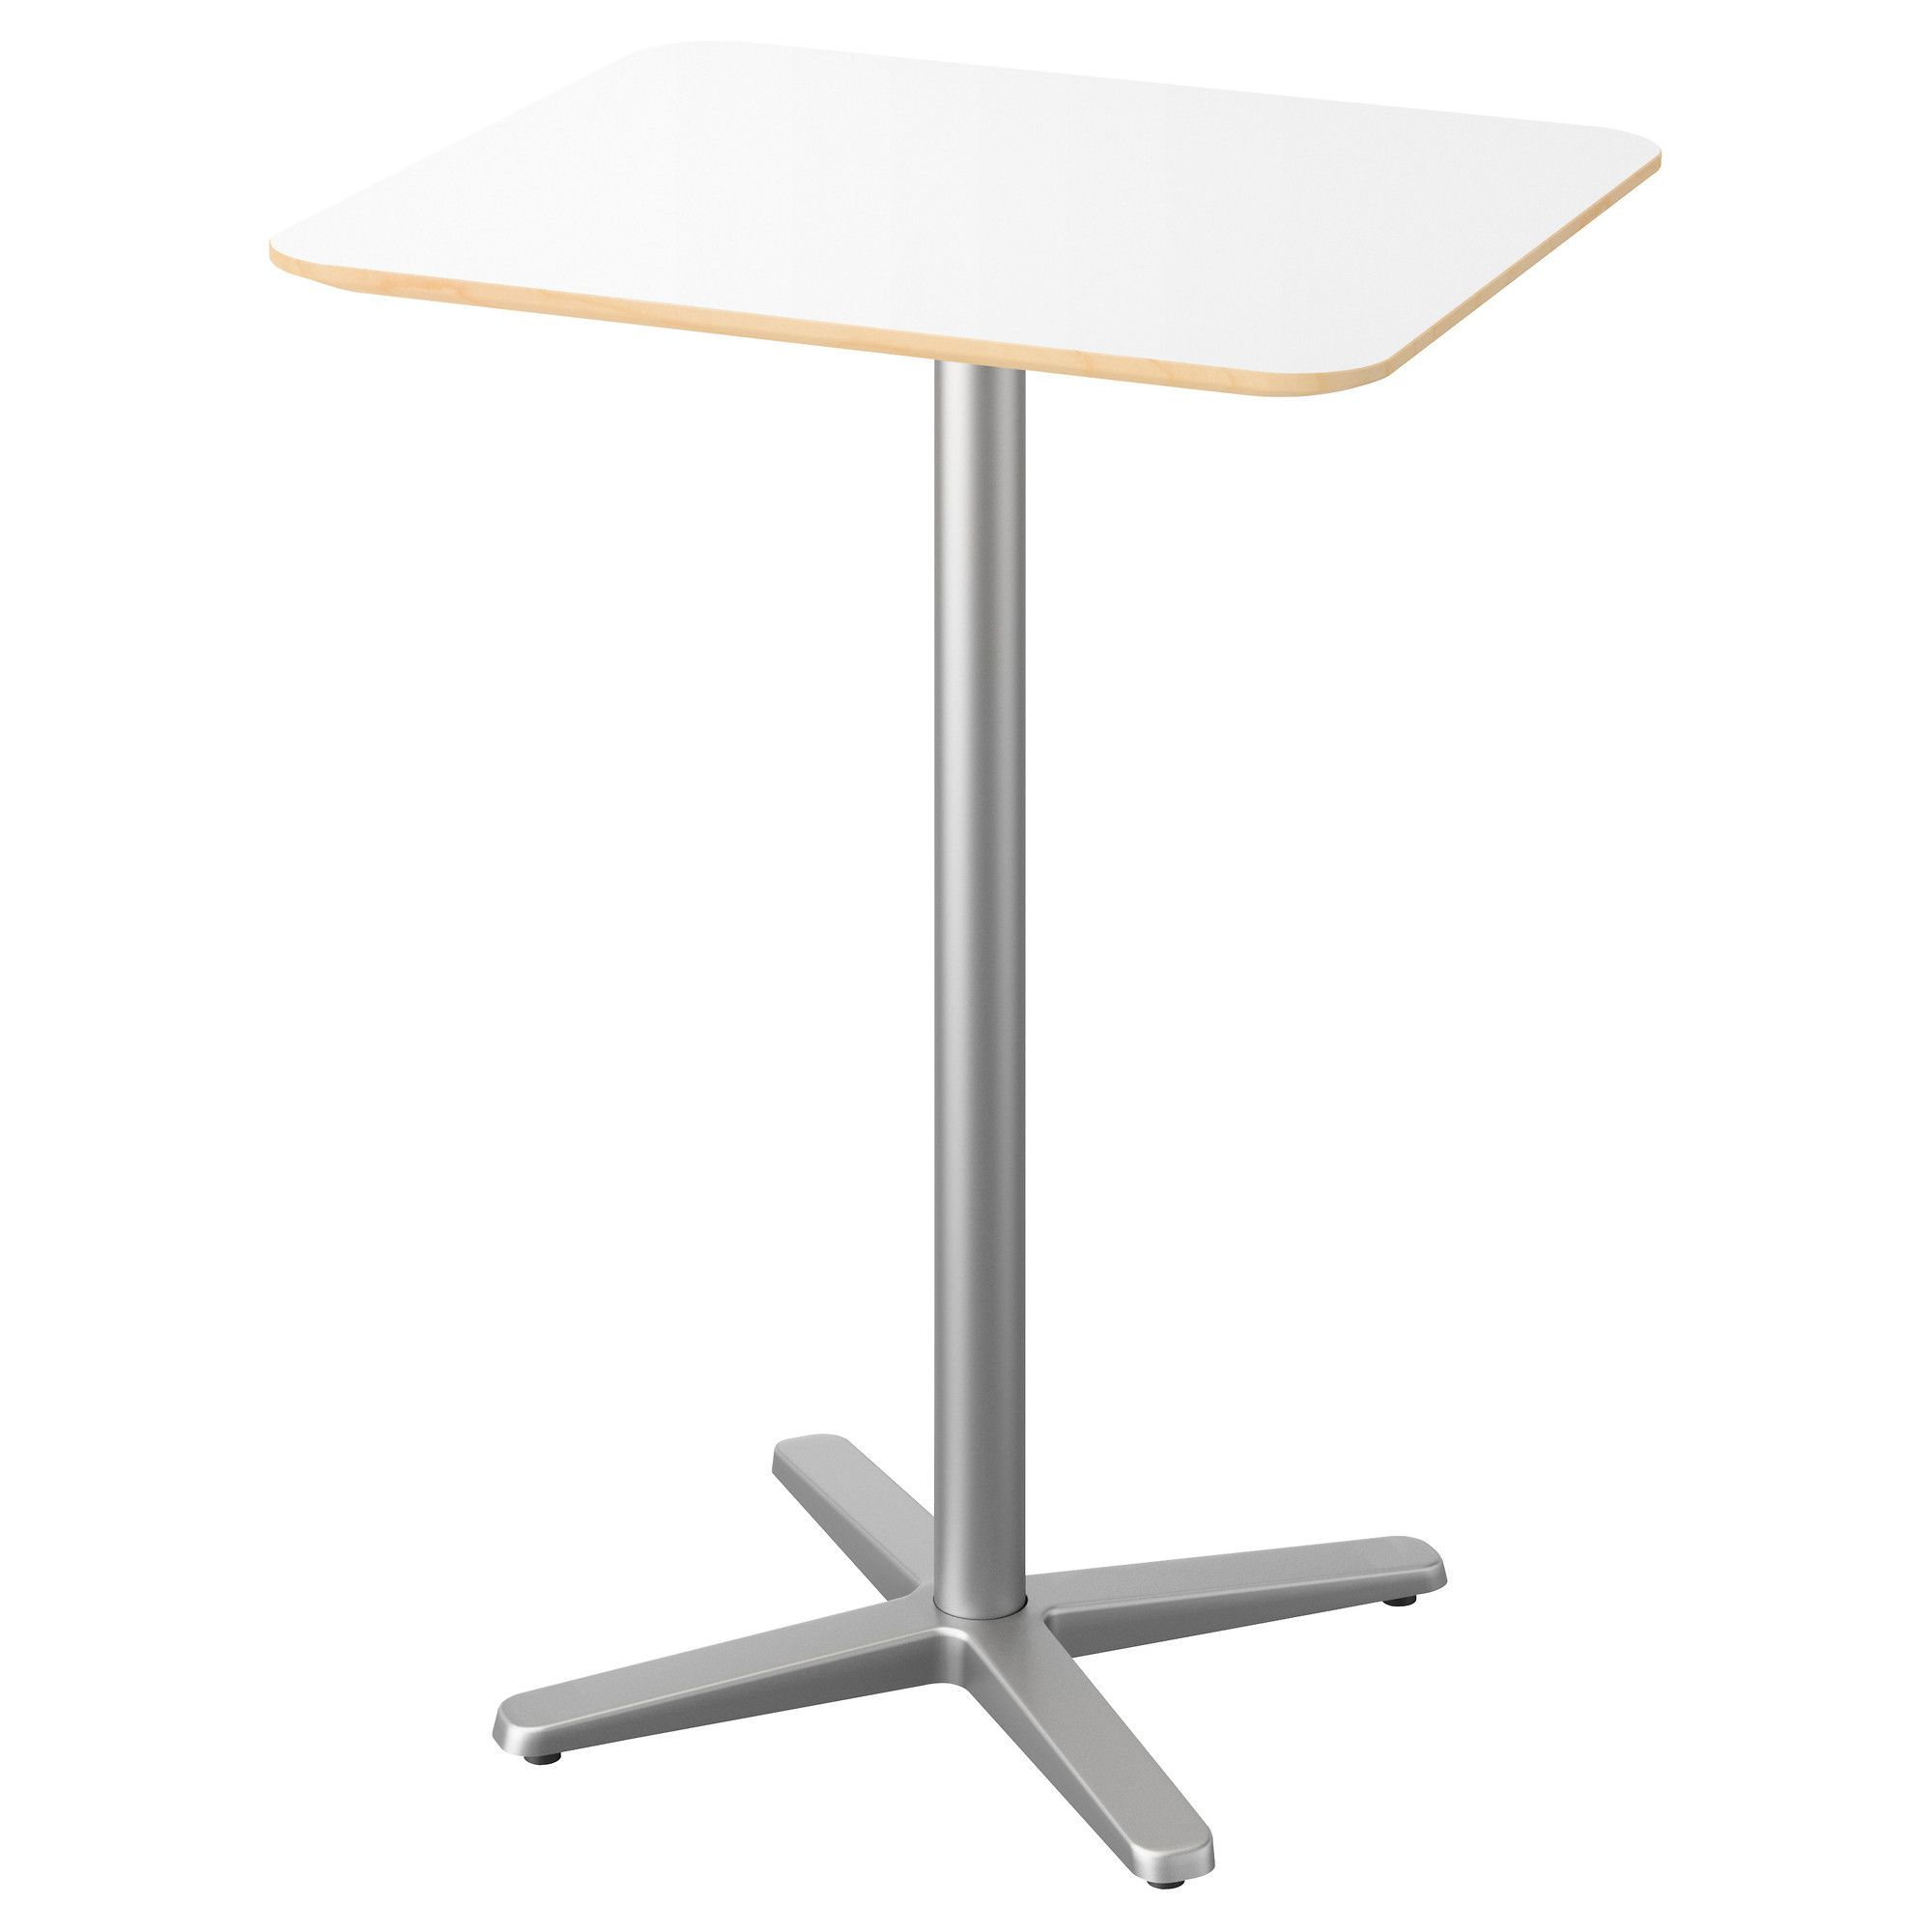 Billsta Bar Table Ikea My Ad Hoc Standing Until I Can Find What